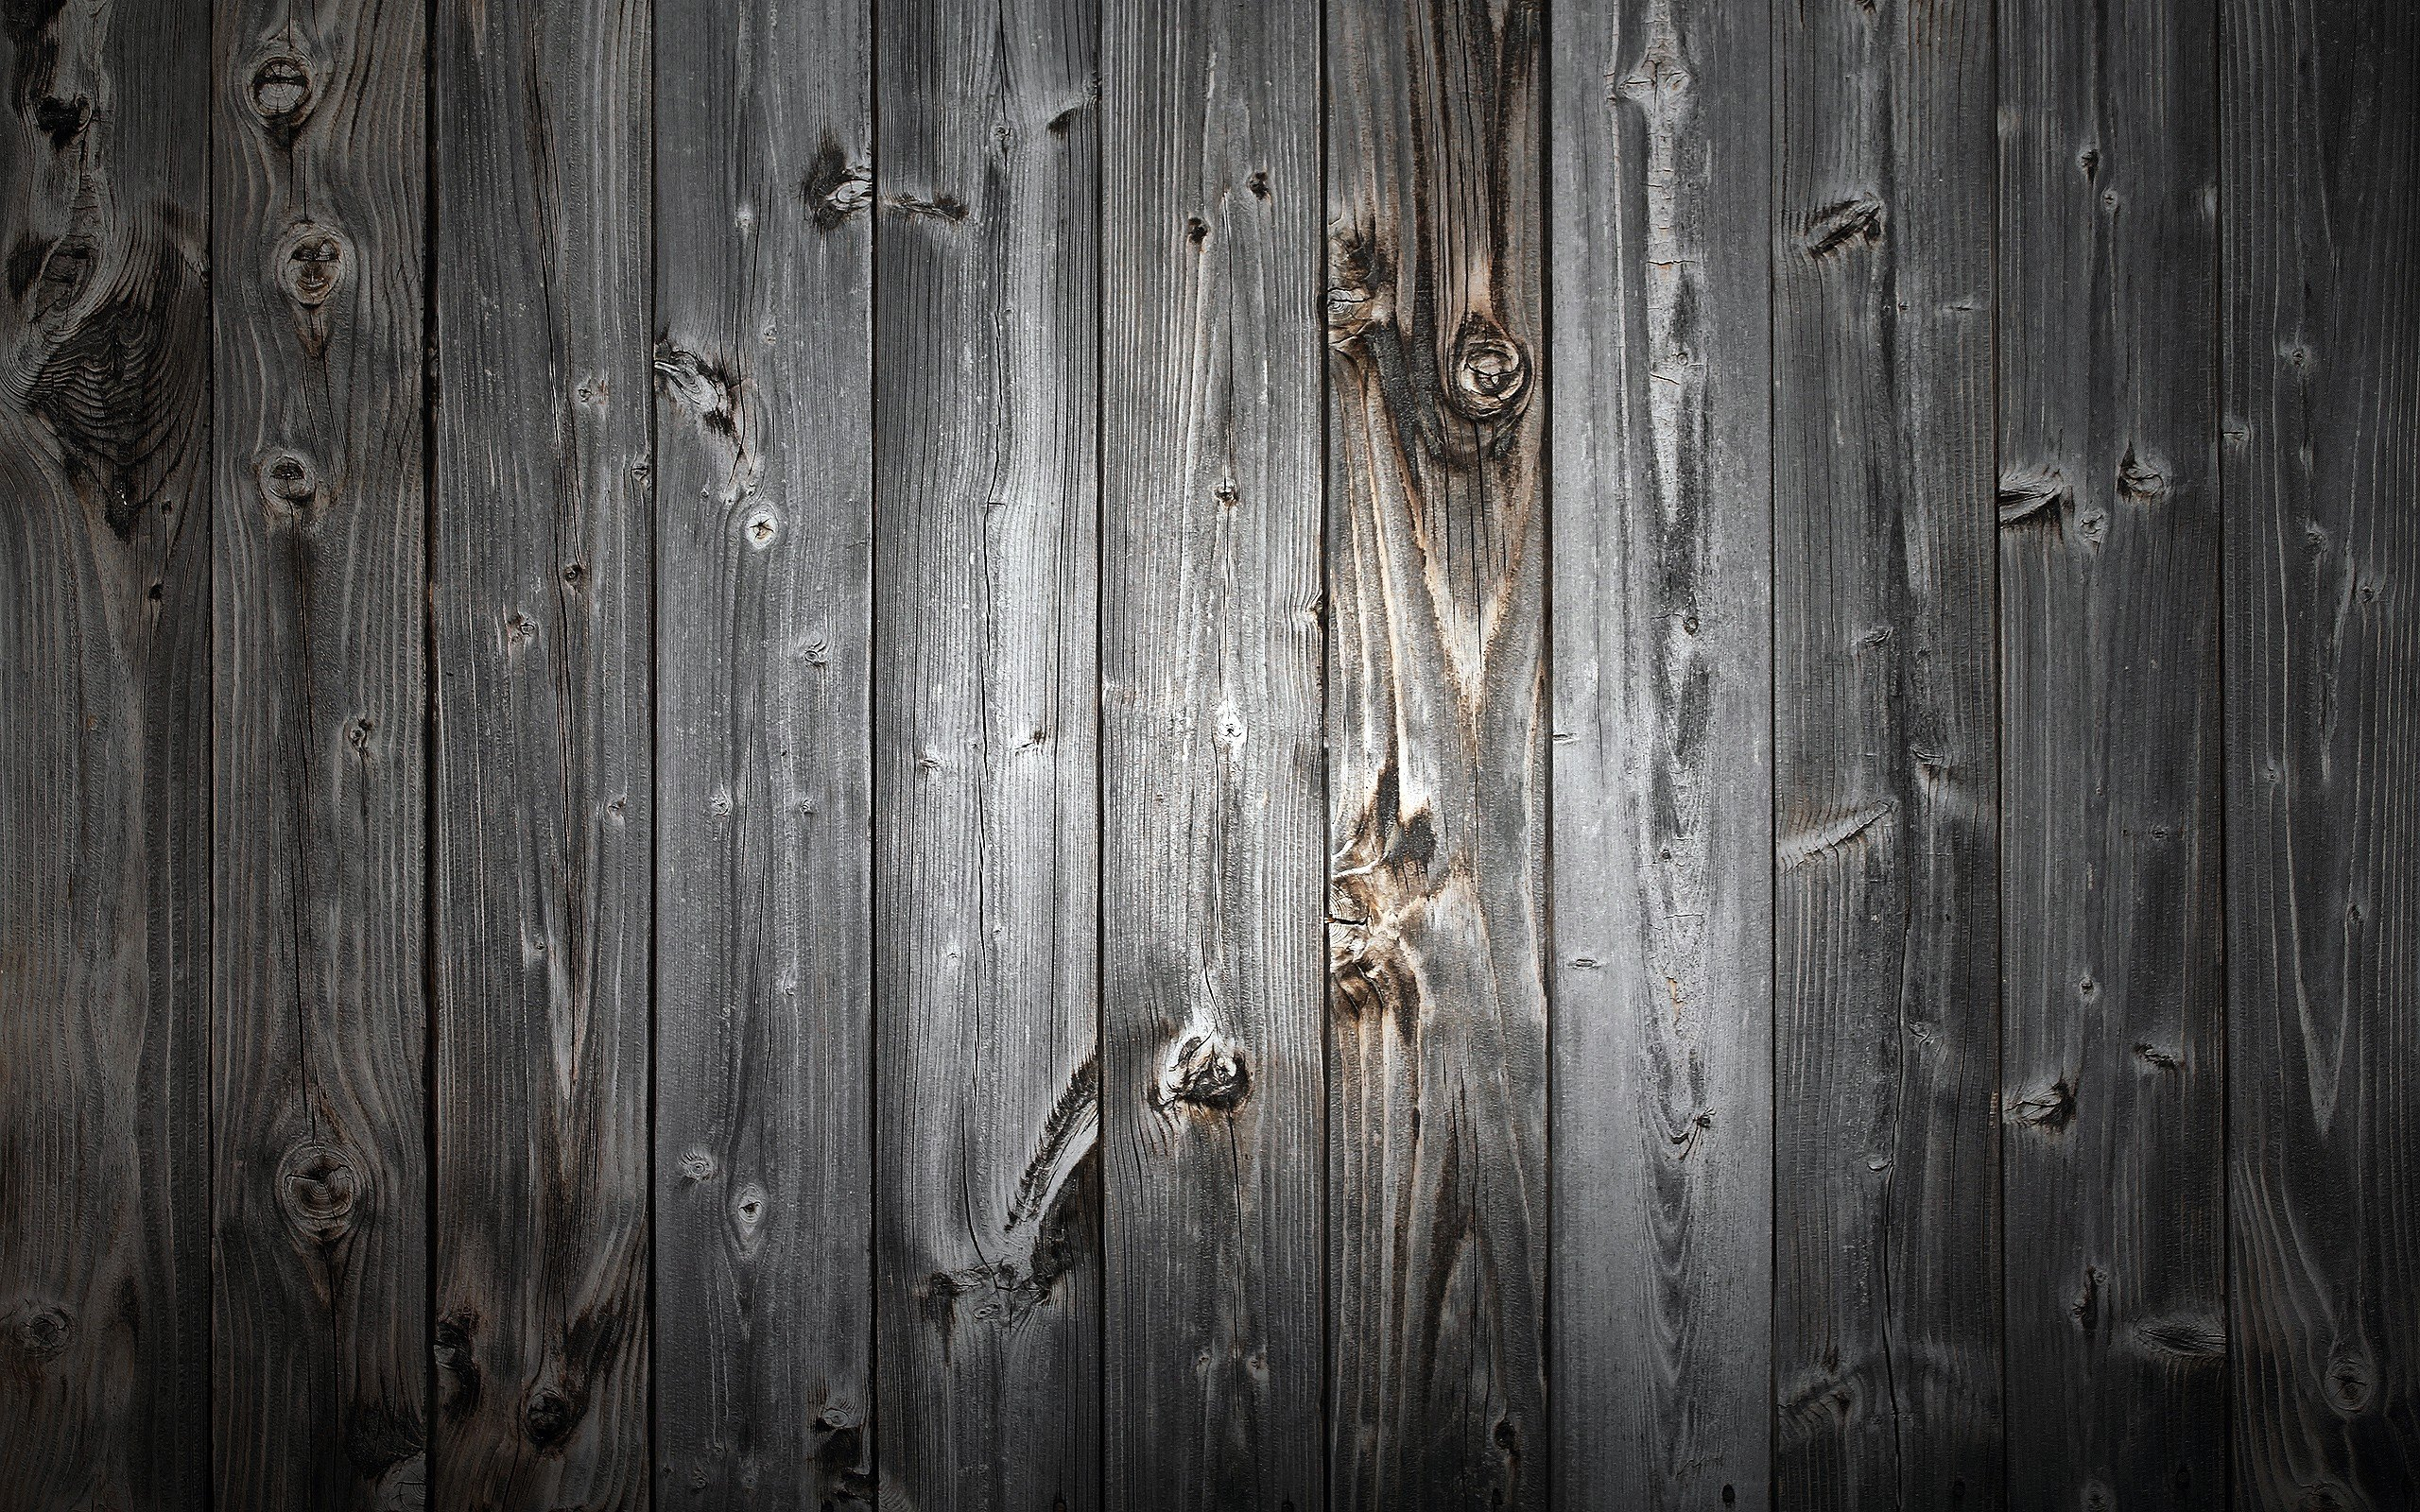 Barn Wood Texture images of barn wood wallpaper texture - #sc